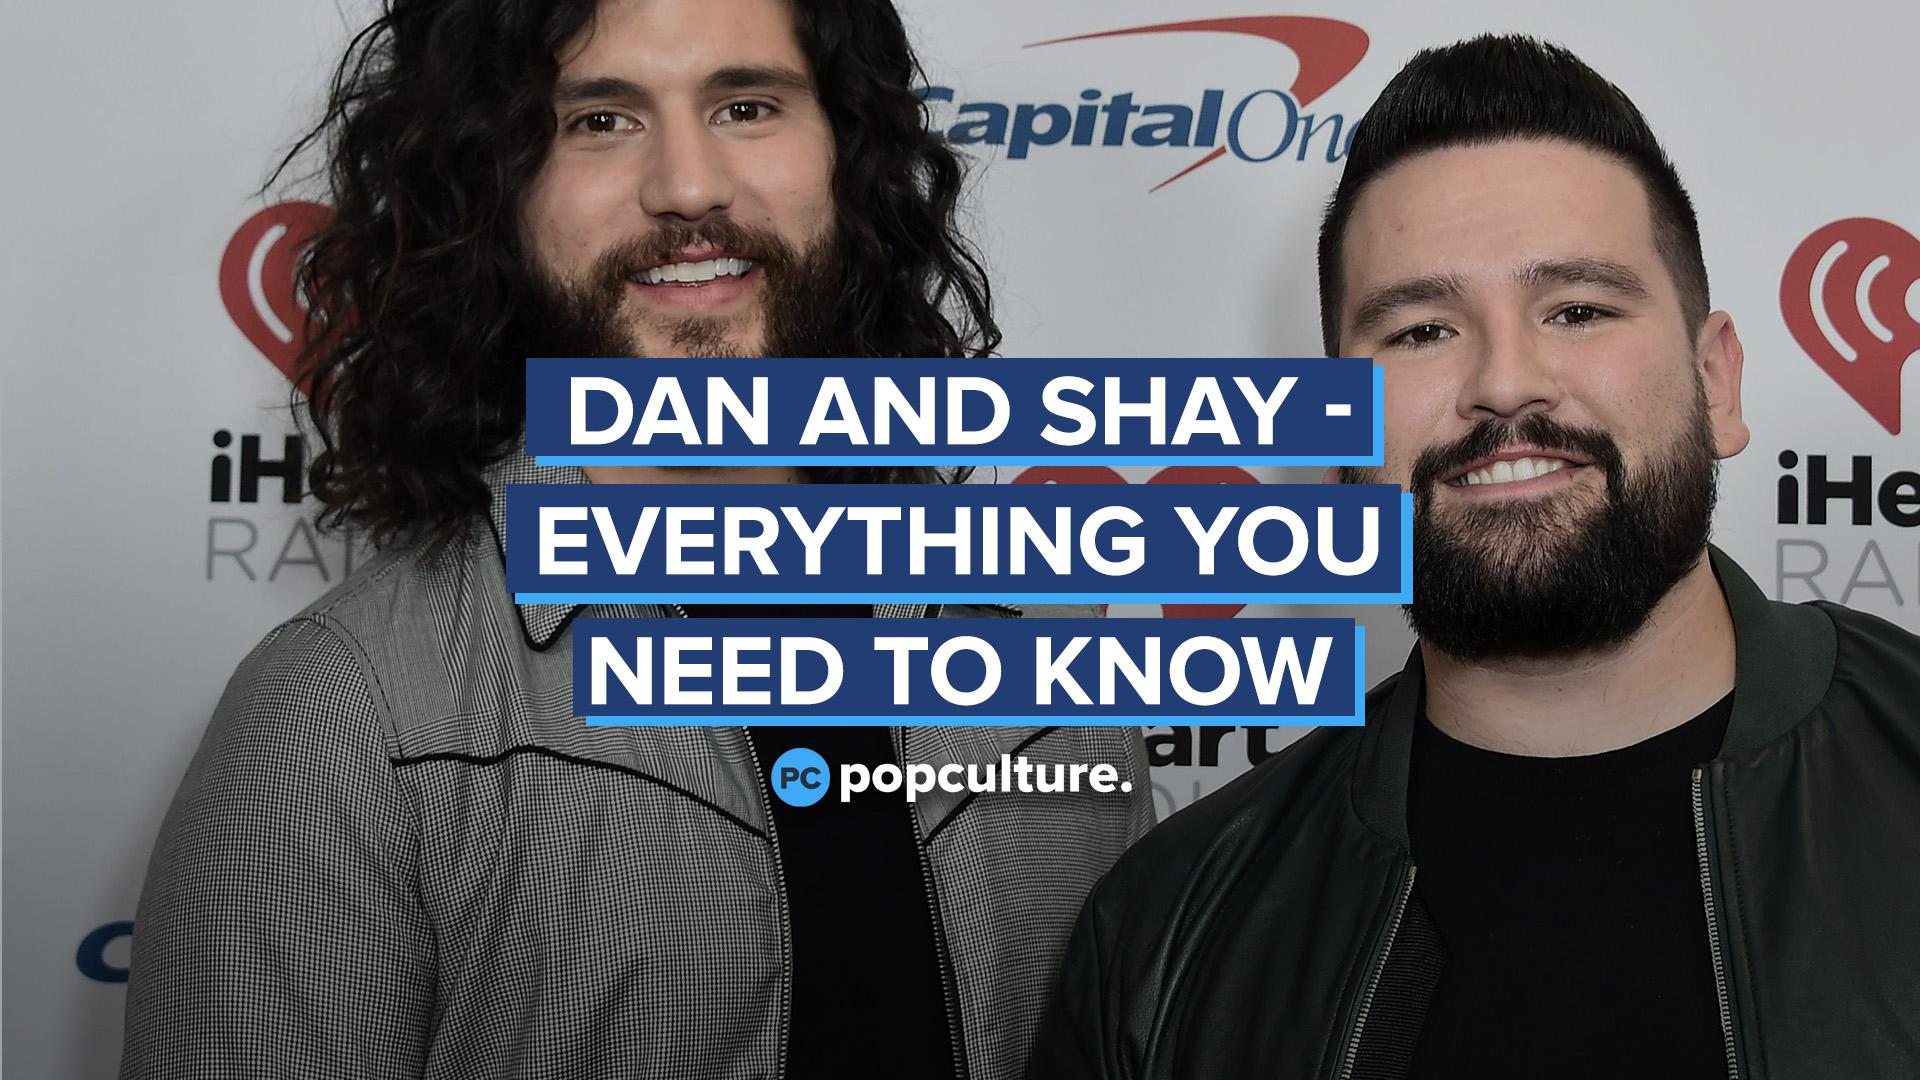 Dan & Shay - Everything You Need to Know screen capture